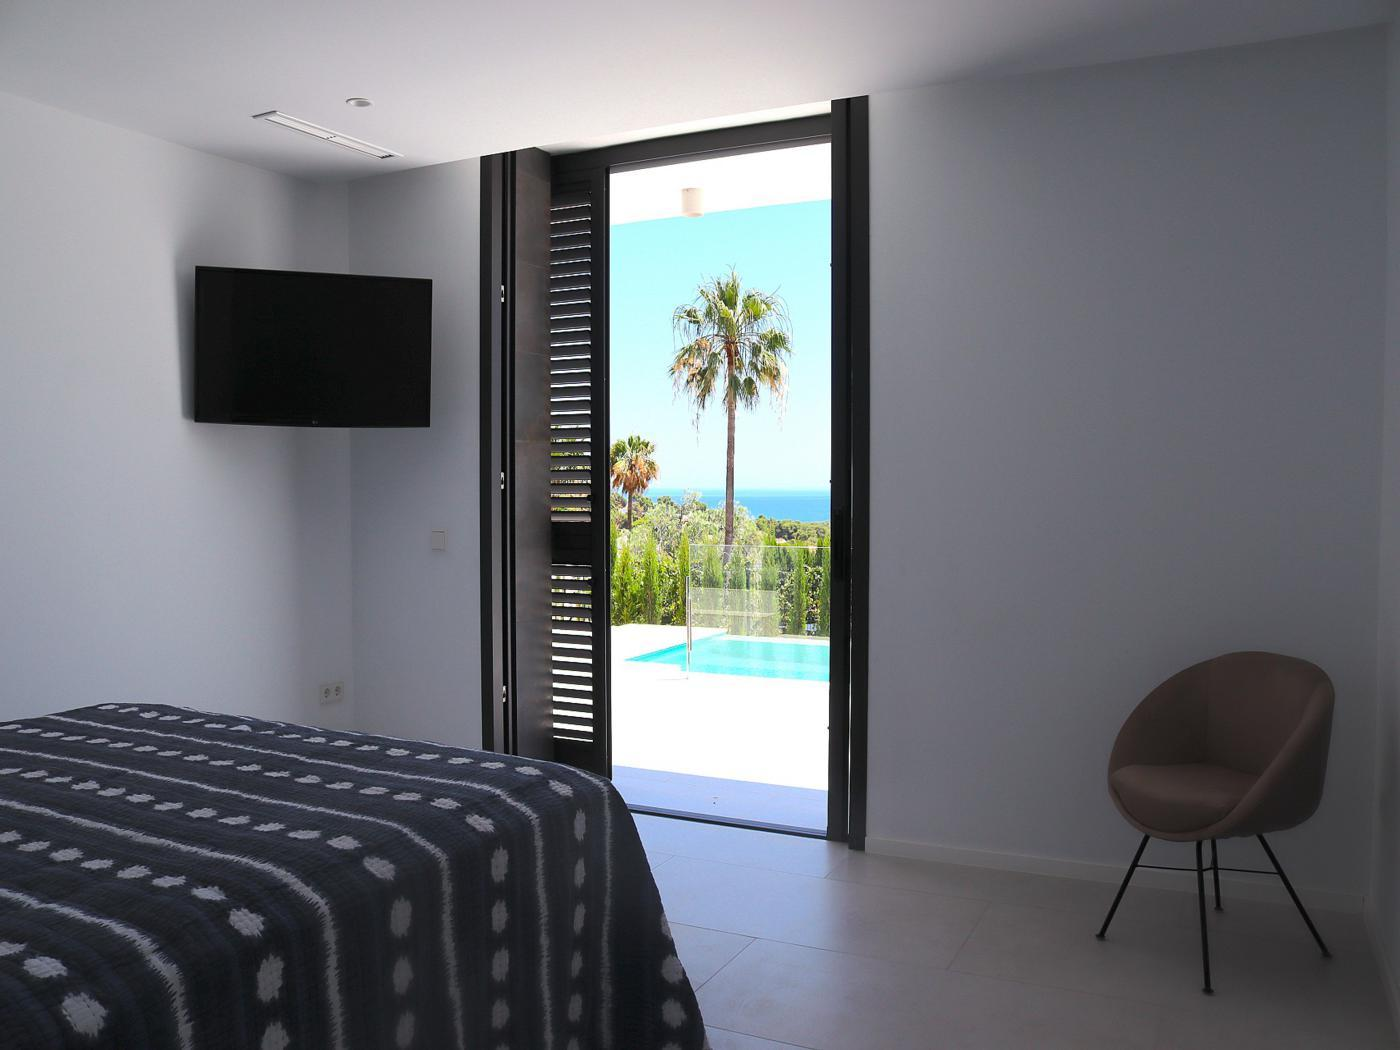 Photogallery - 26 - Exceptional homes in the Costa Blanca. Unparalleled Service. Exceptional properties in the Costa Blanca